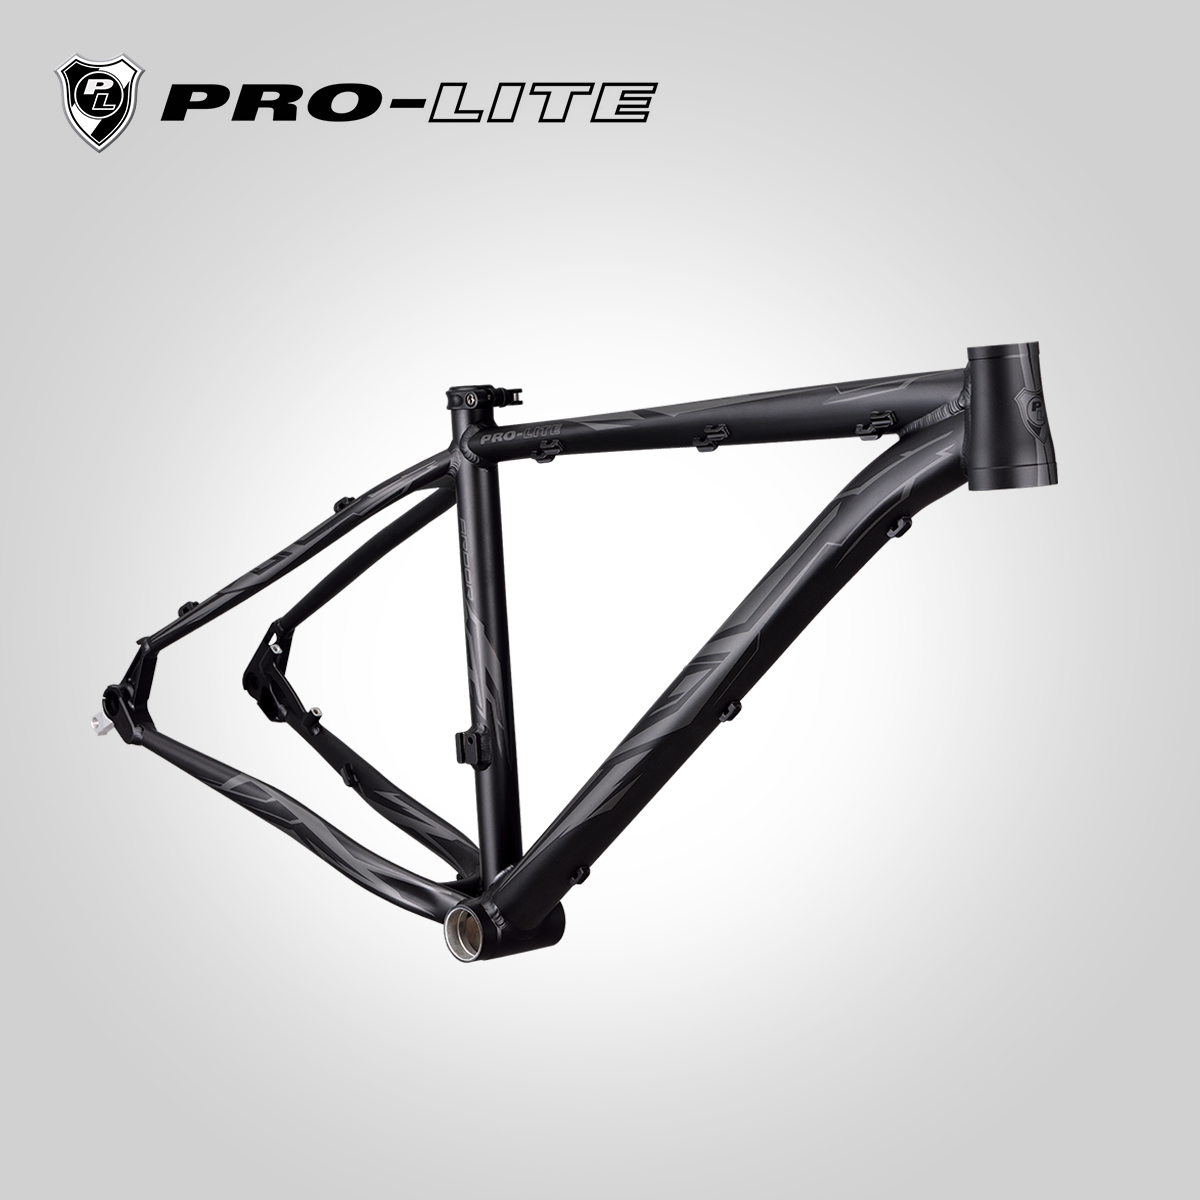 Pro-Lite bicycle frame aluminum bike frame assembly 15 inch 17 inch mountain bike frame 26 inch